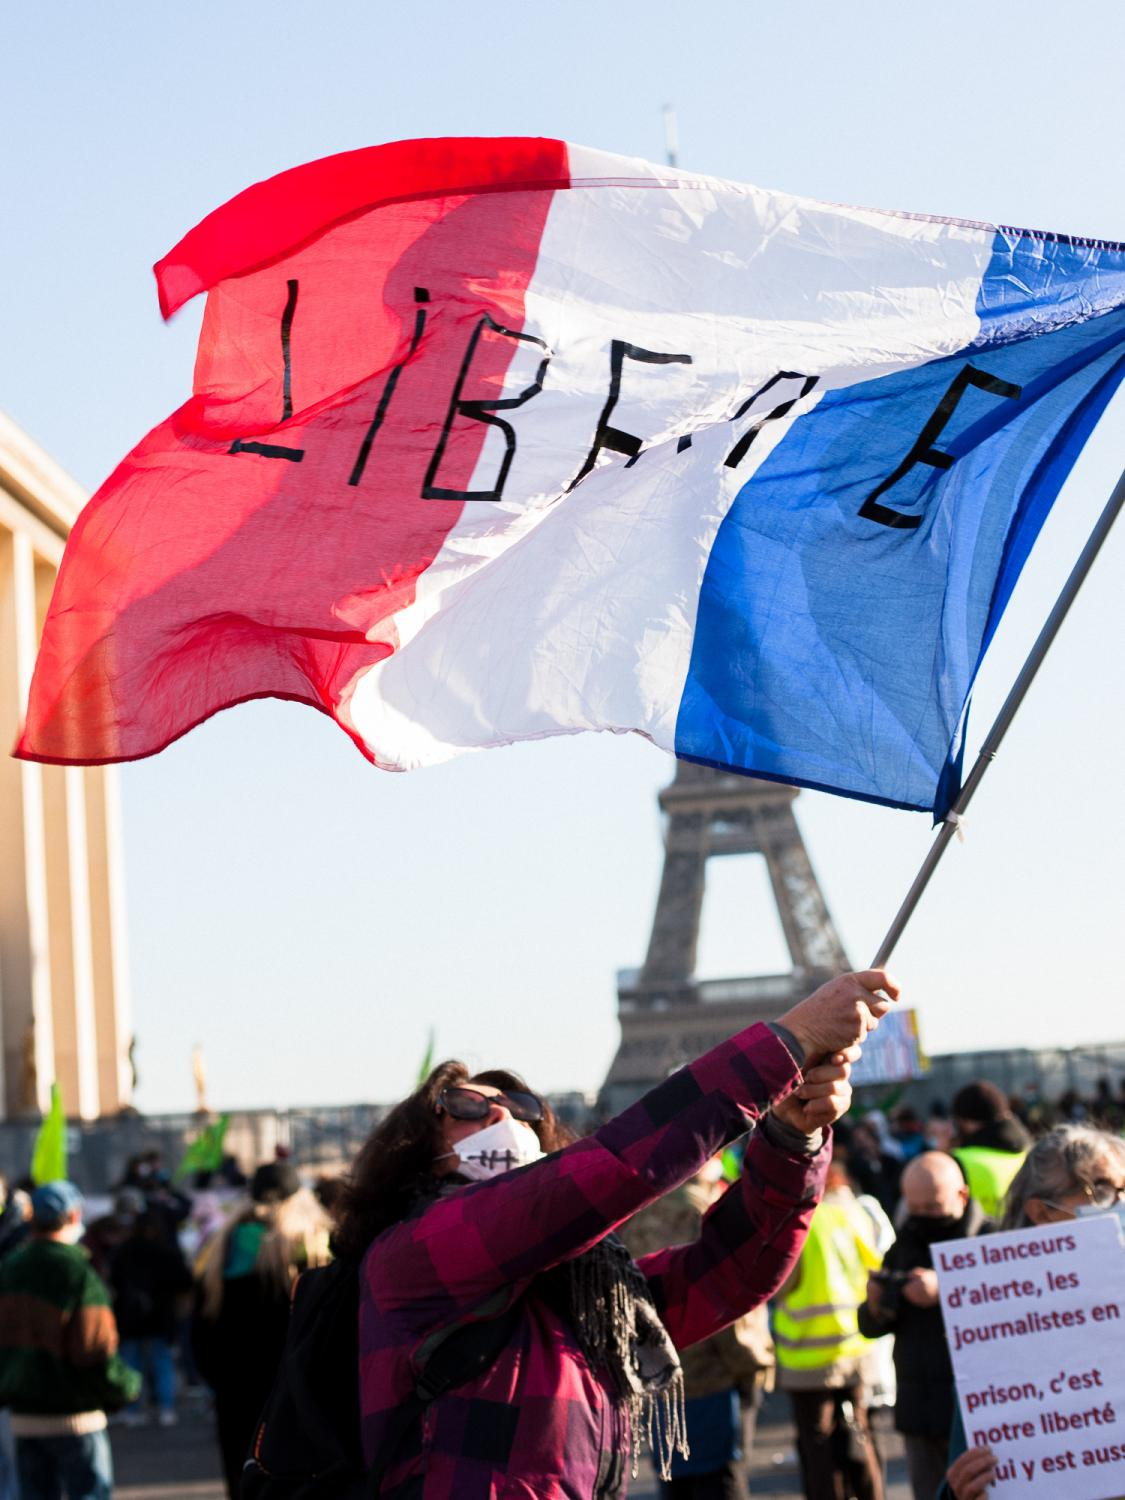 """In front of the barricaded Human Rights Square a woman waves a French flag reading """"Liberté"""" (freedom). Rally against the controversial so called """"Sécurité Globale"""" (Global Security) bill. Trocadero Square, Paris, France, the 21st of November 2020."""